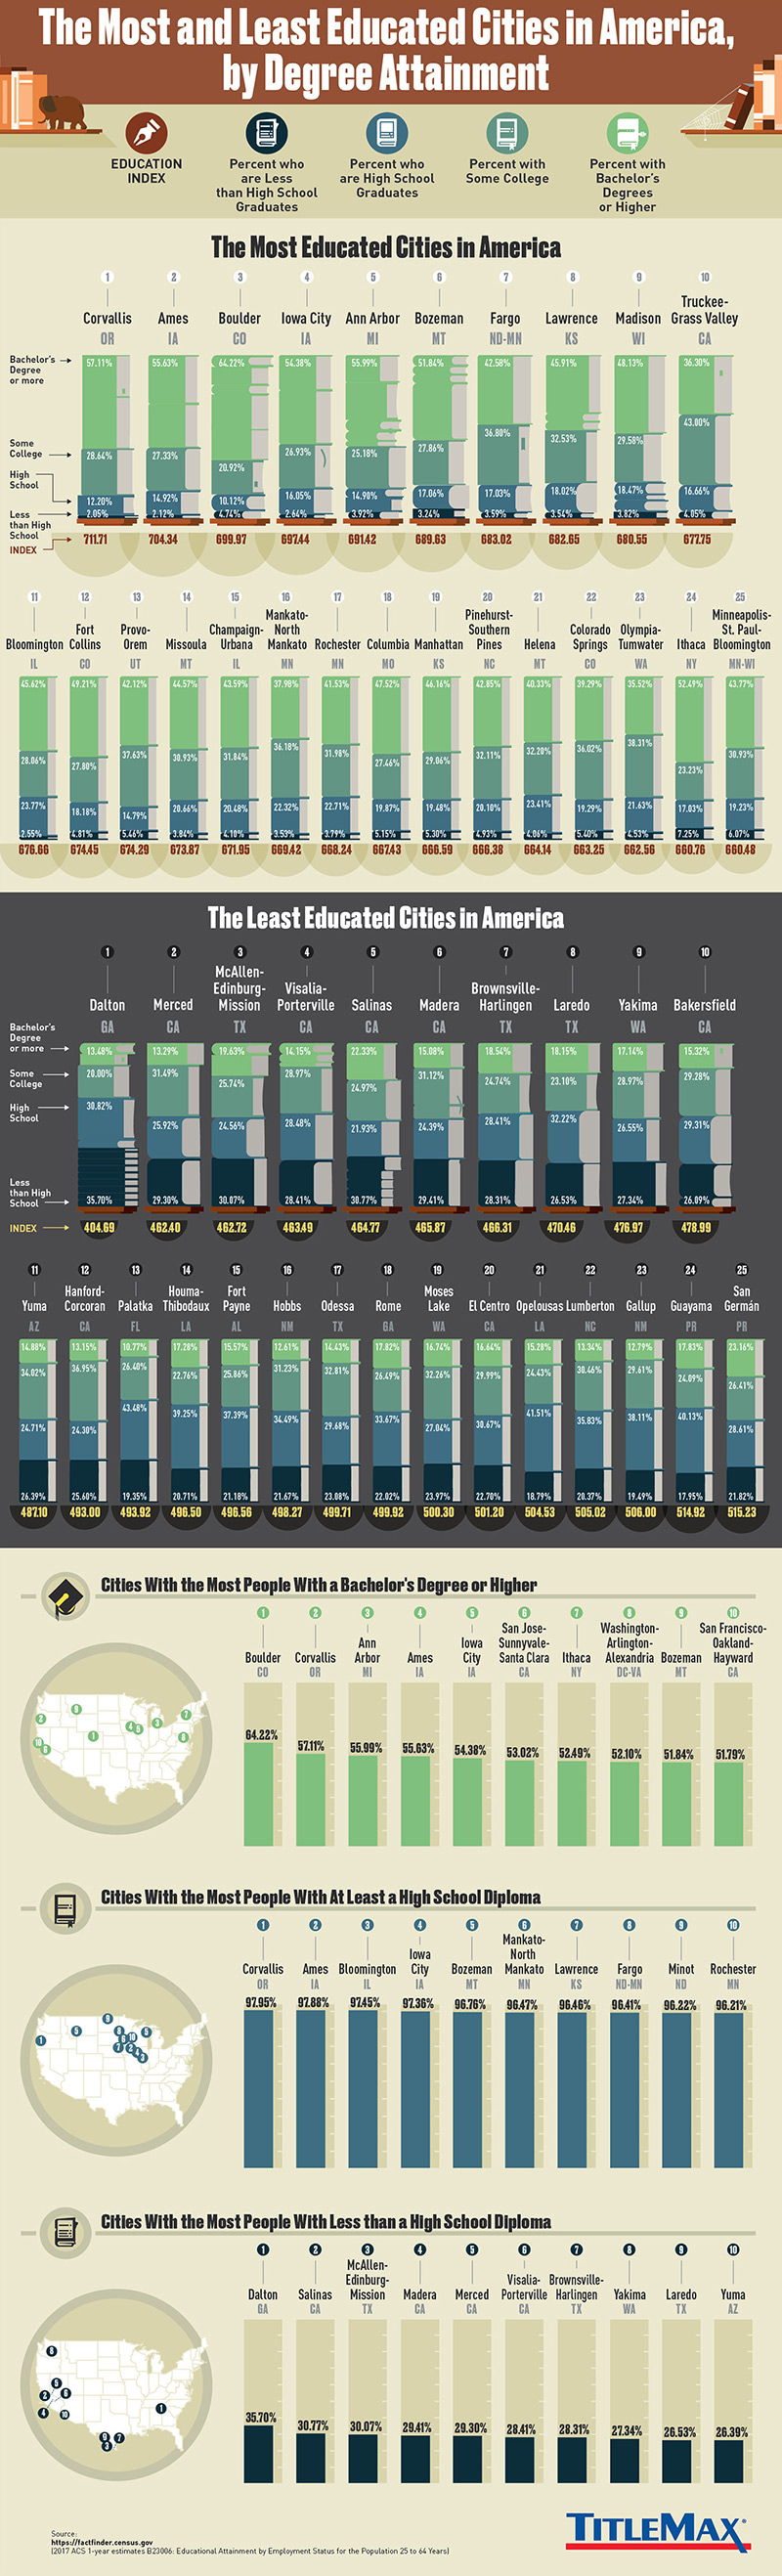 Most Vs Least Educated: The Educational Attainment Index of American Cities - Infographic